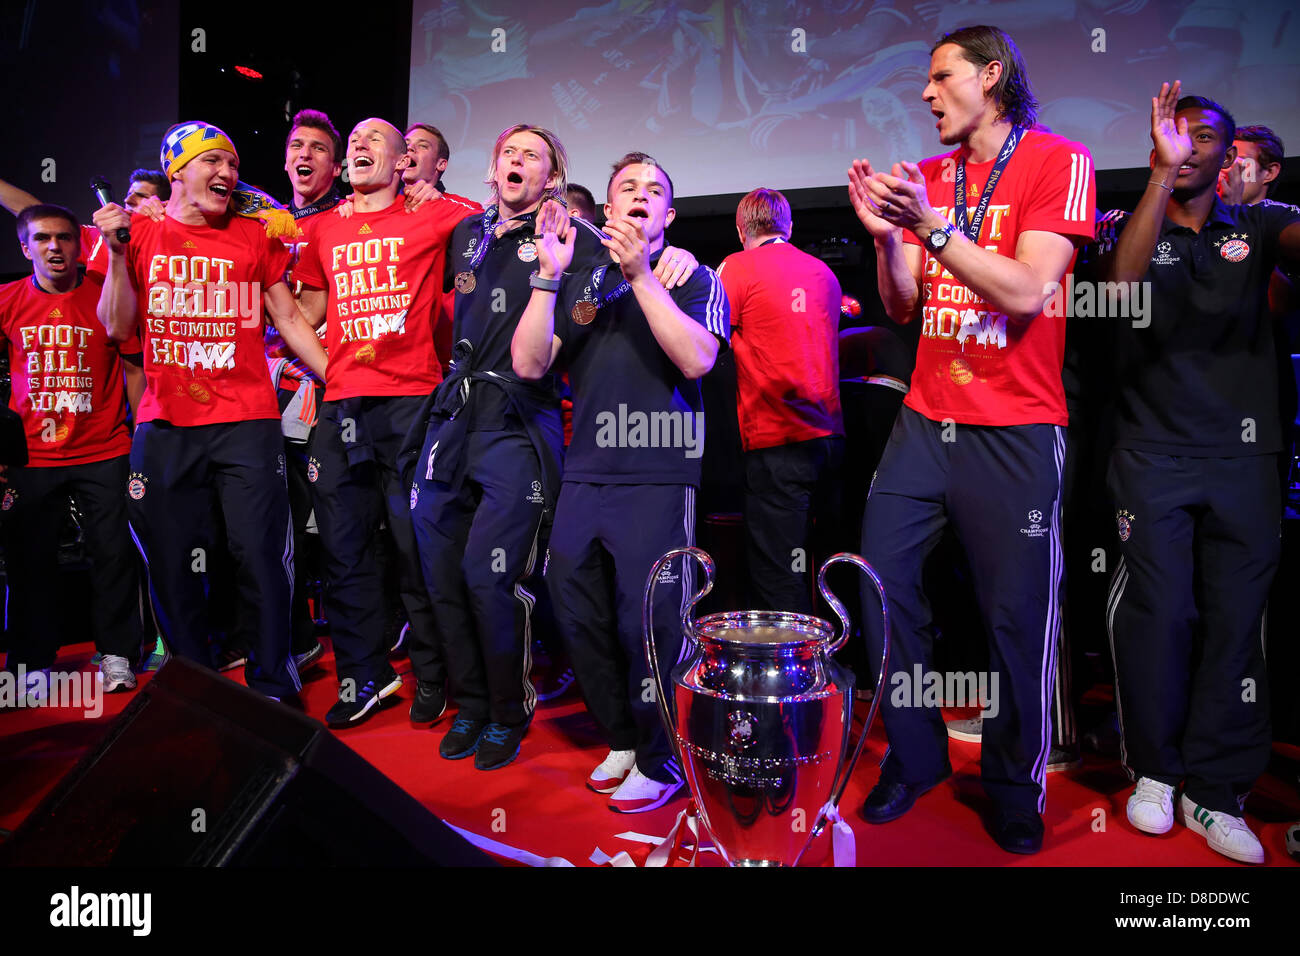 London, UK. 25th May, 2013.  Bastian Schweinsteiger (3rd L) of FC Bayern Muenchen celebrates with his team mates on the Bayern Muenchen Champions League Finale banquet at Grosvenor House on May 25, 2013 in London, England.  Bastian Schweinsteiger Stock Photo